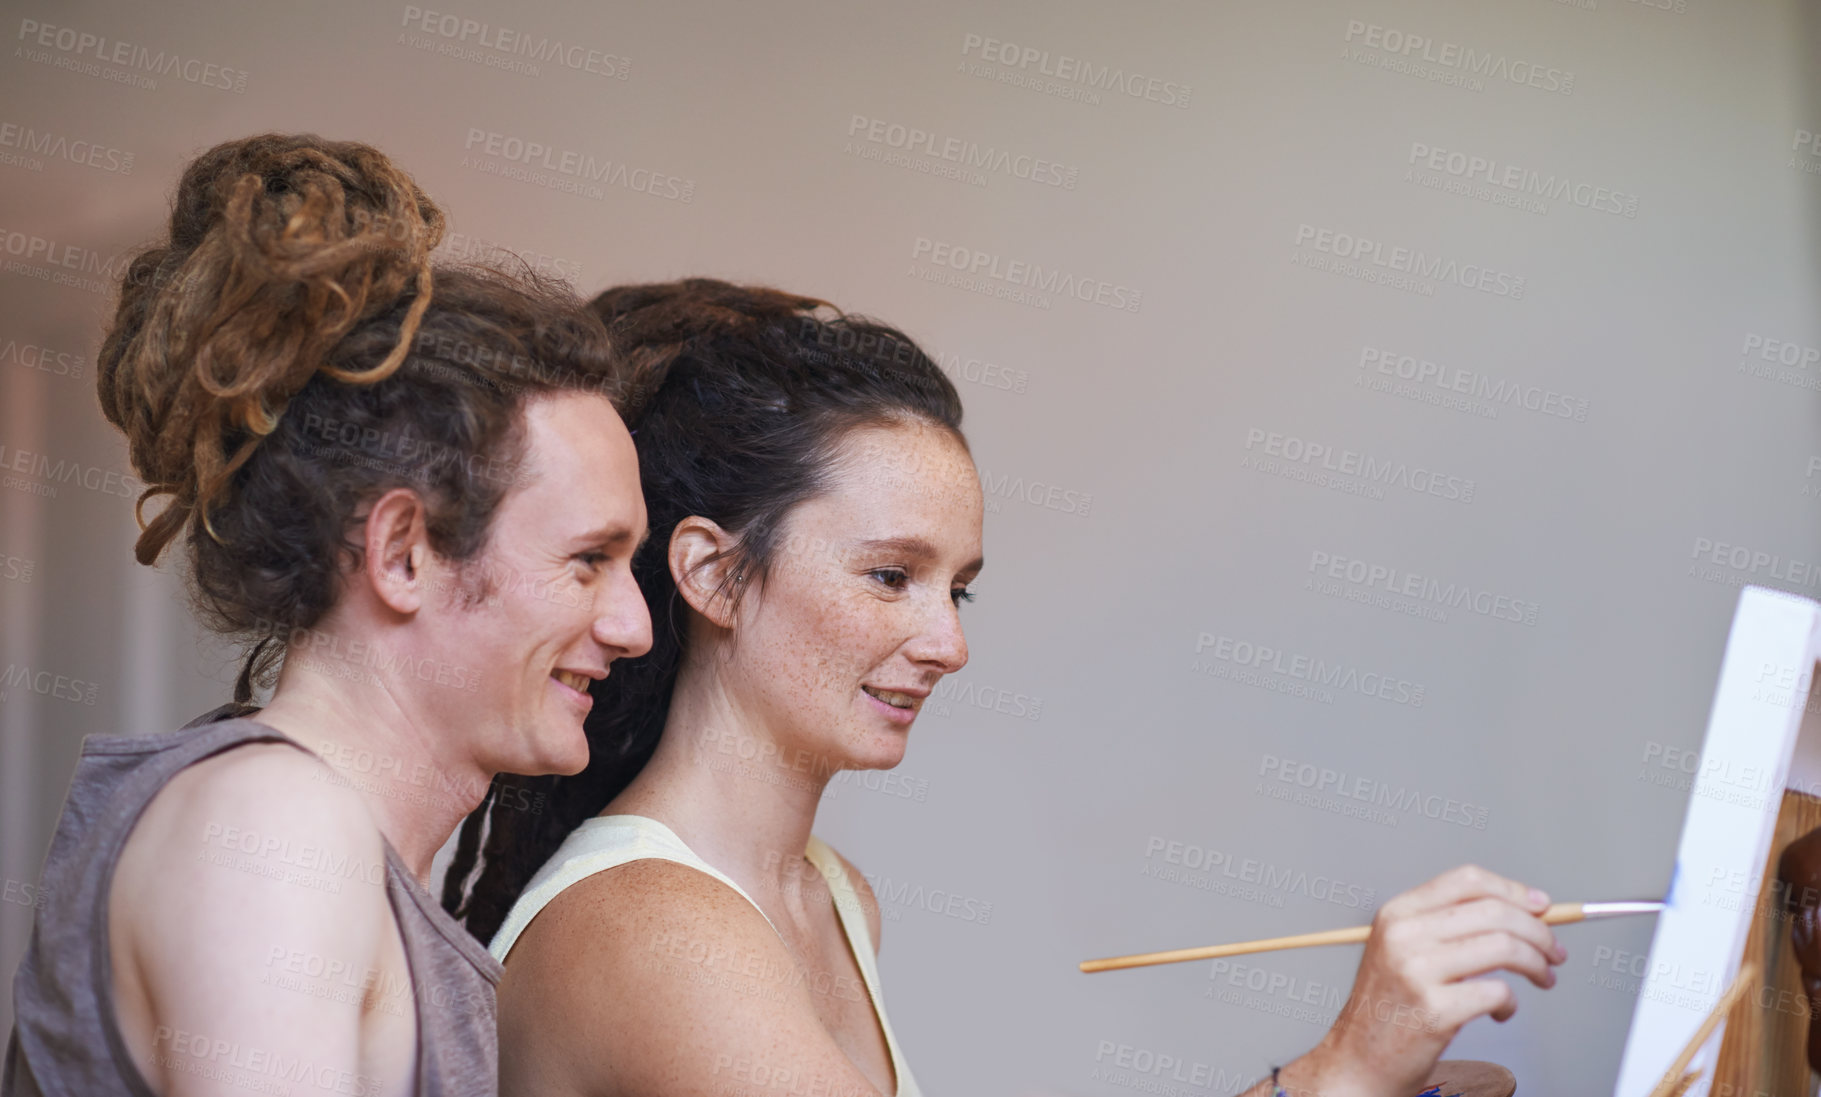 Buy stock photo A cropped view of a young artist painting with her boyfriend's support